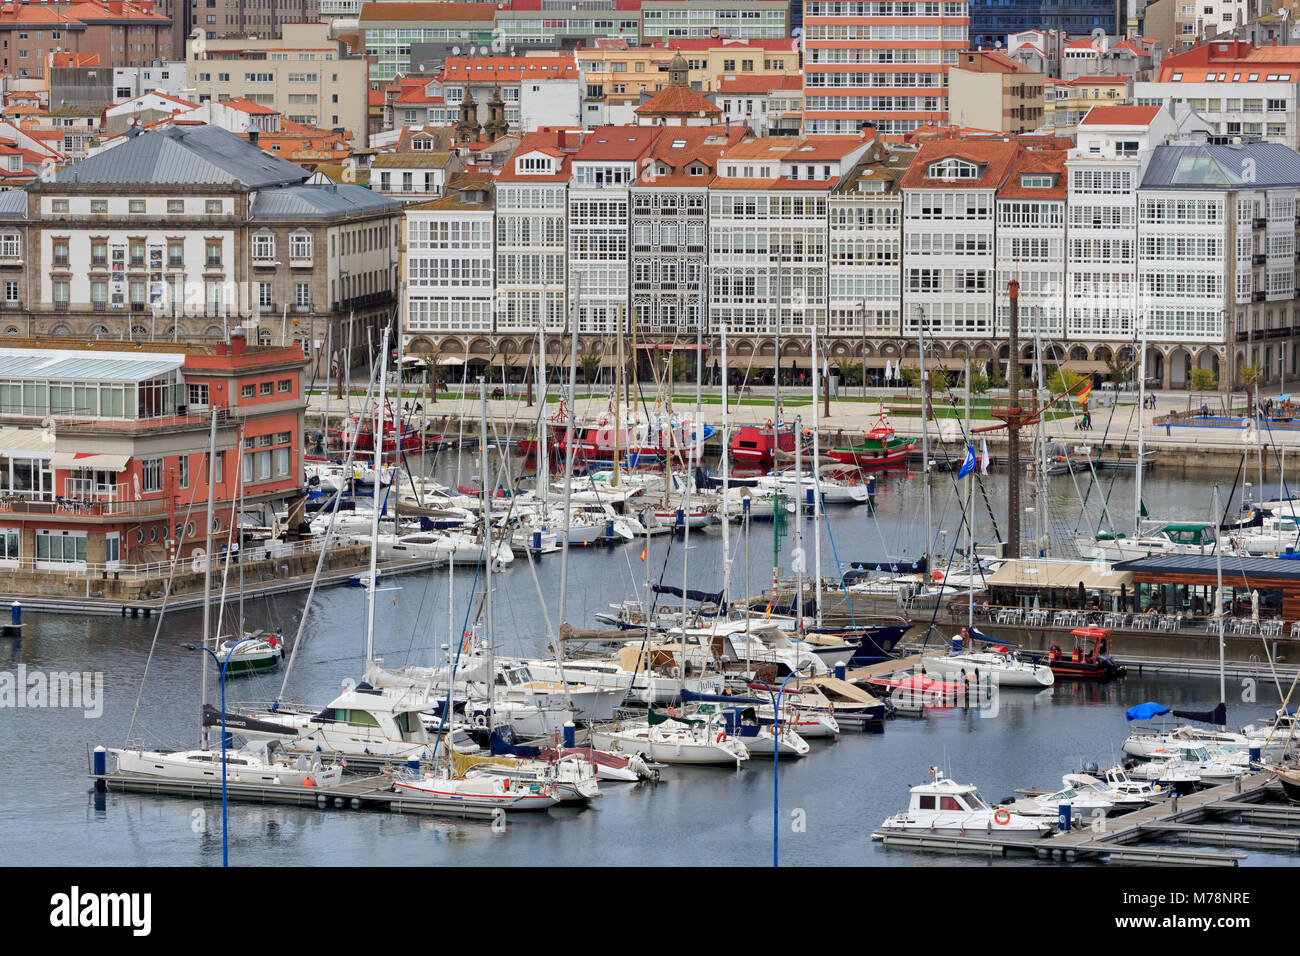 Yacht Marina, La Coruna City, Galicia, Spain, Europe - Stock Image